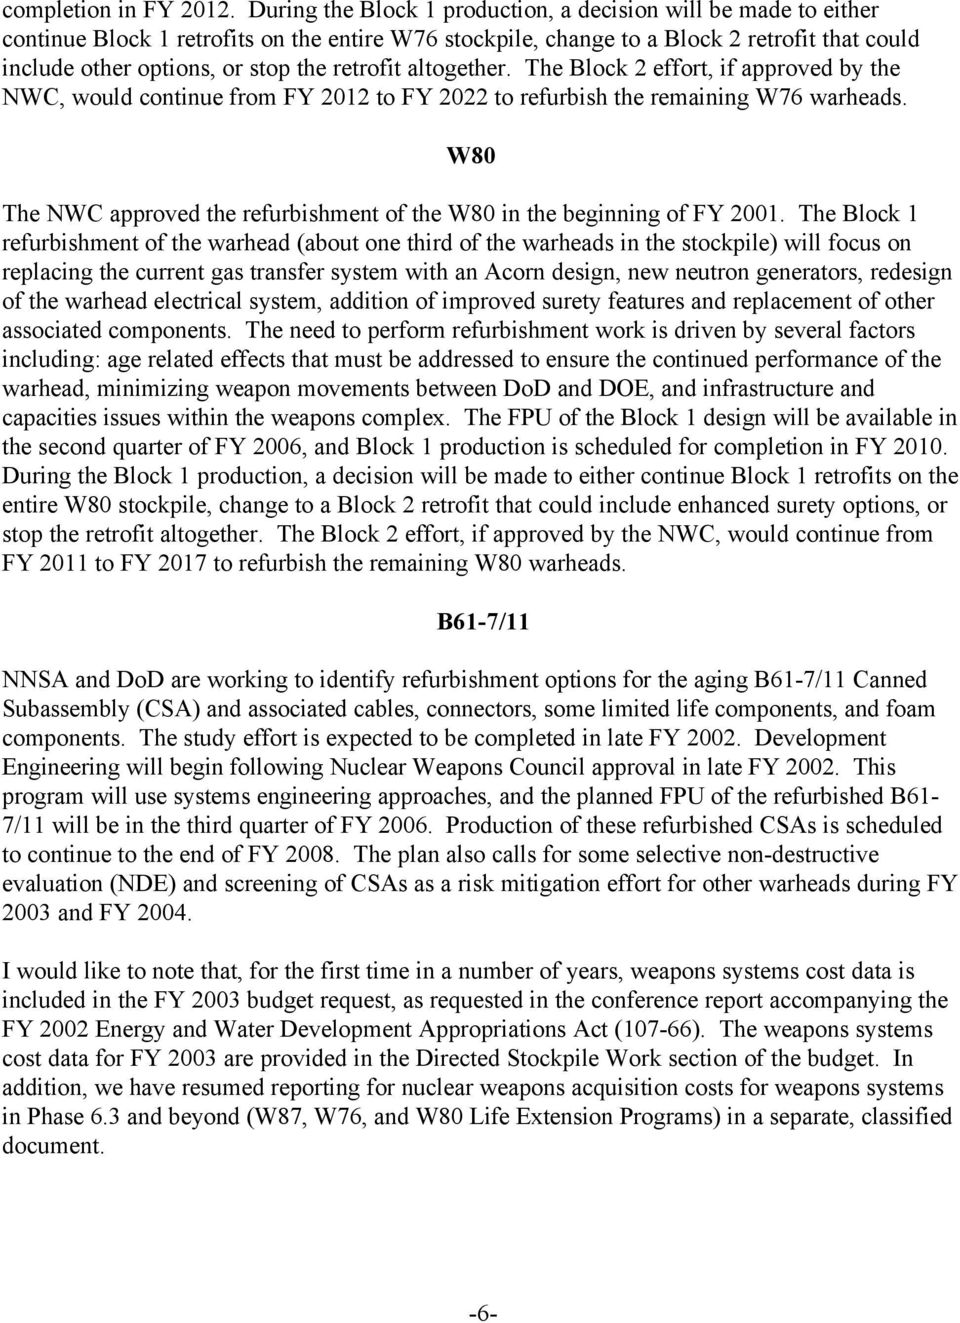 retrofit altogether. The Block 2 effort, if approved by the NWC, would continue from FY 2012 to FY 2022 to refurbish the remaining W76 warheads.